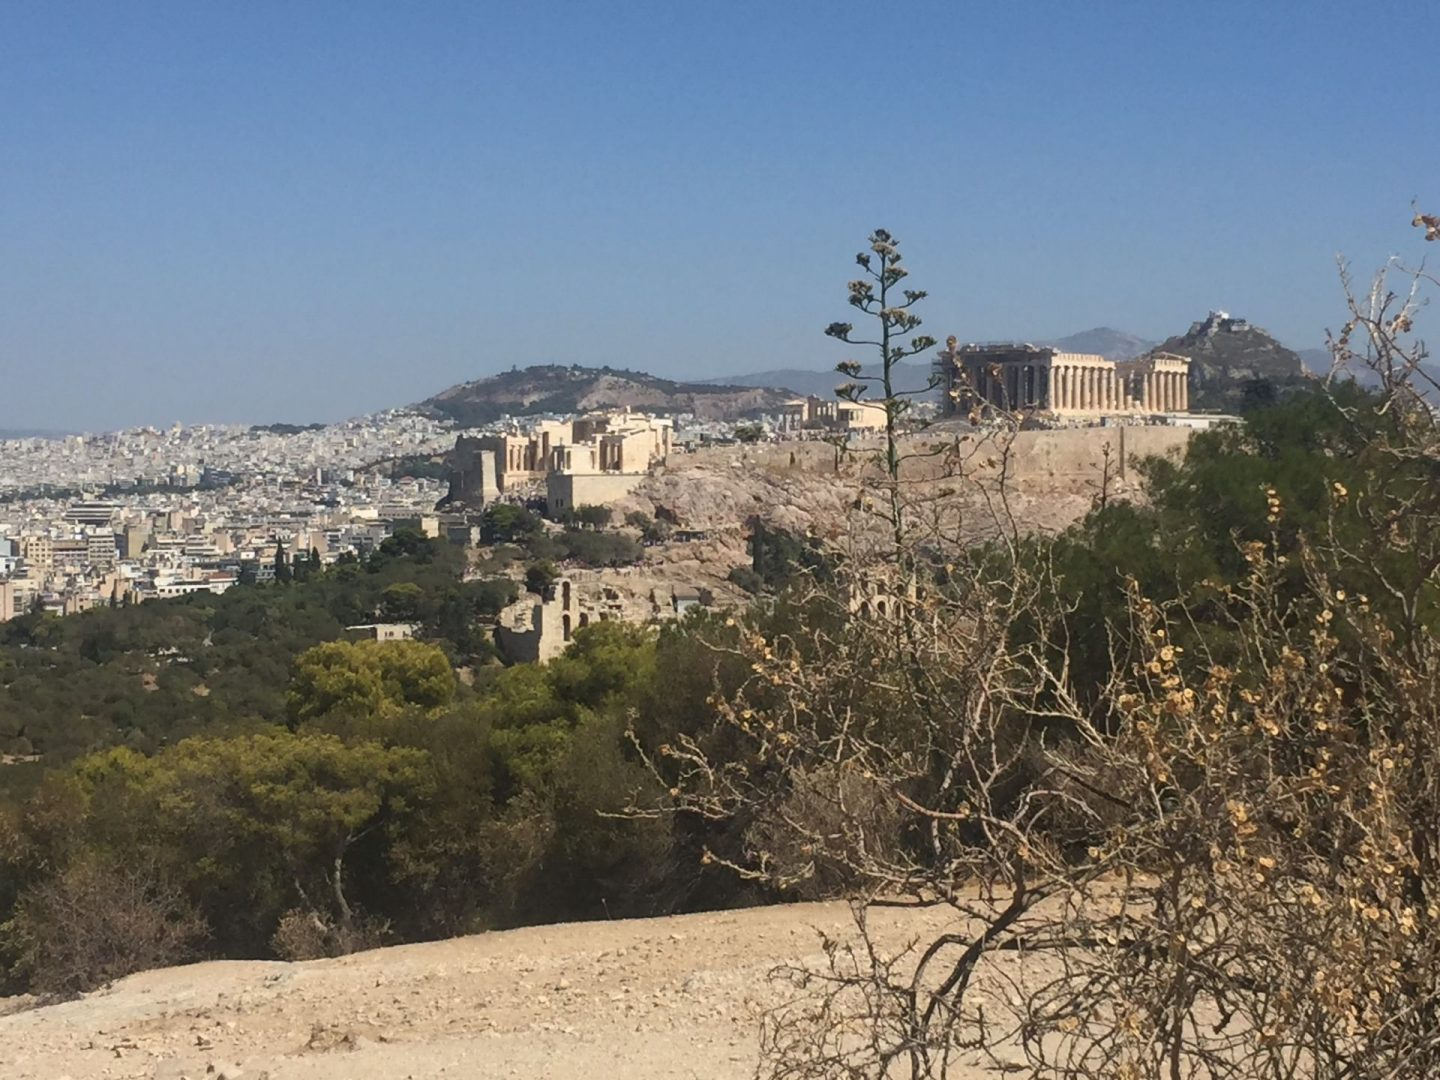 Views of the Acropolis in Athens